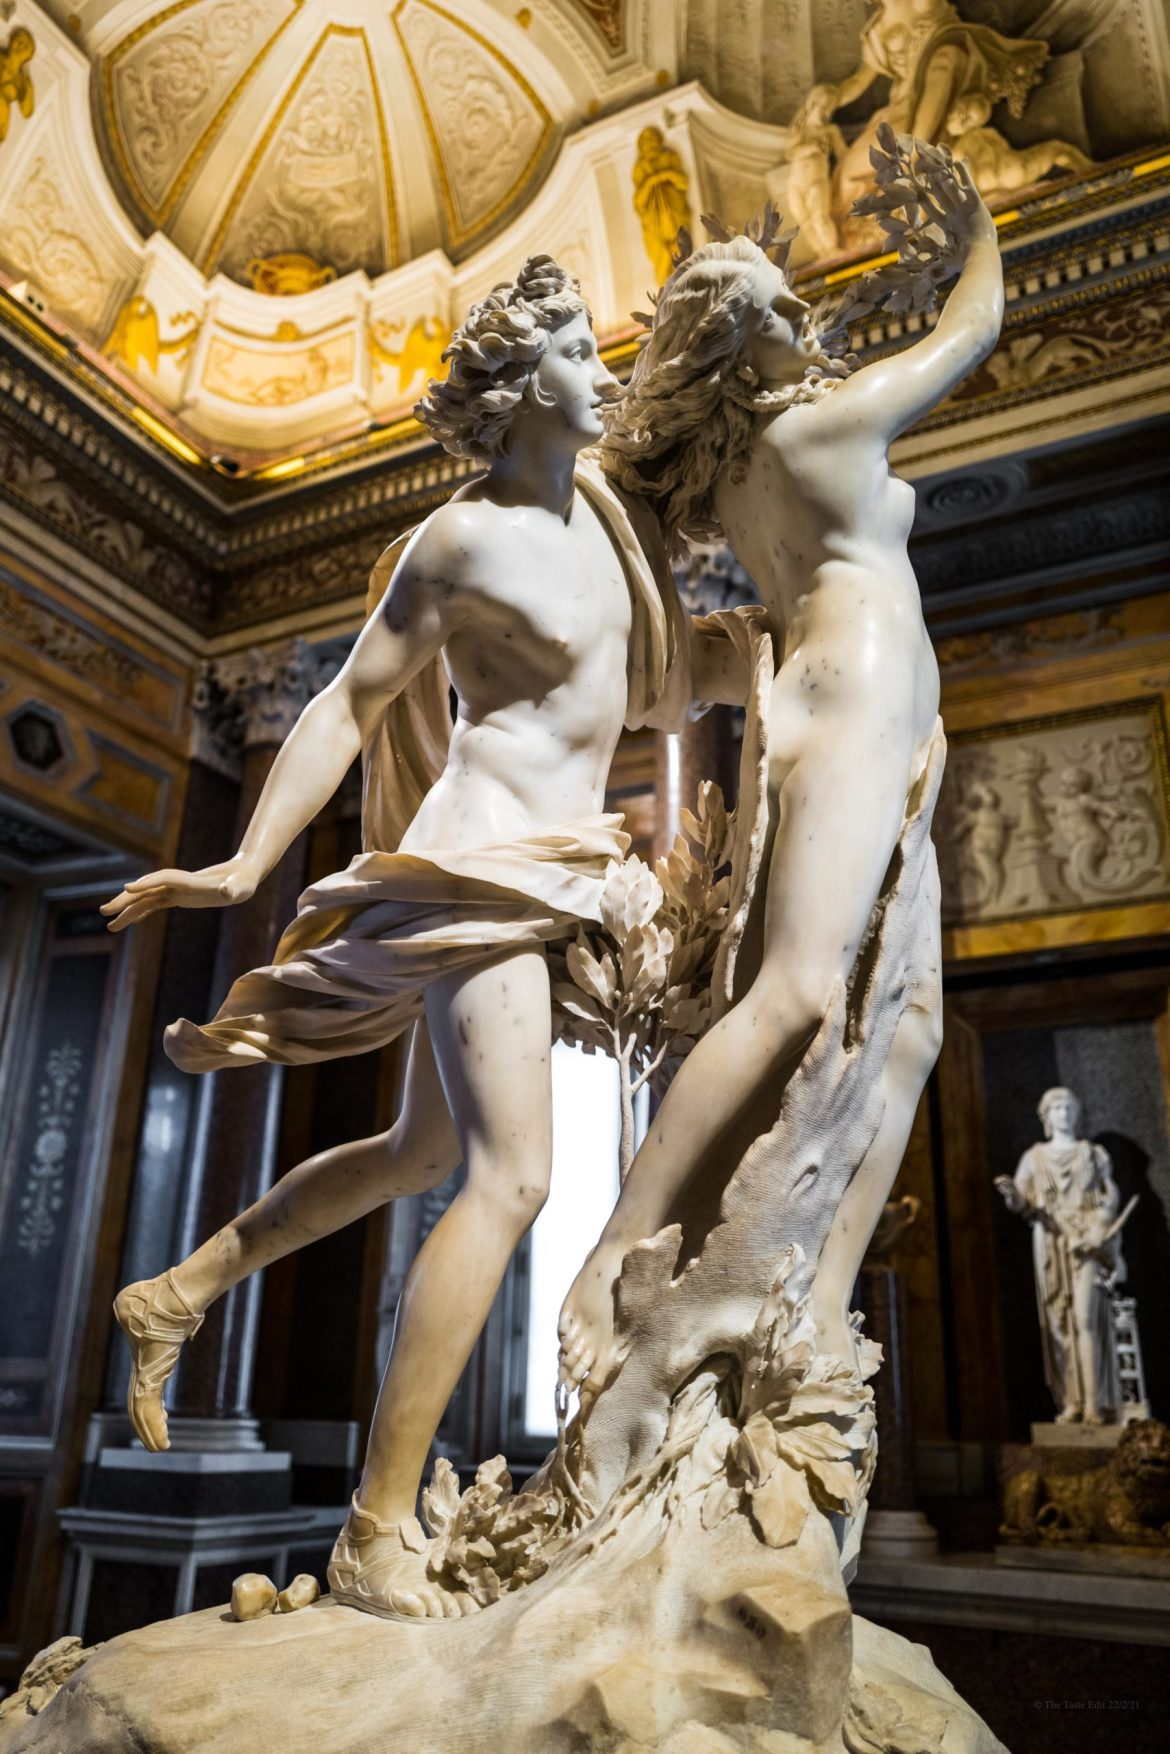 Visiting Bernini statues at the Galleria Borghese in Rome without tourists, The Taste Edit #rome #borghese #italy #travel #museum